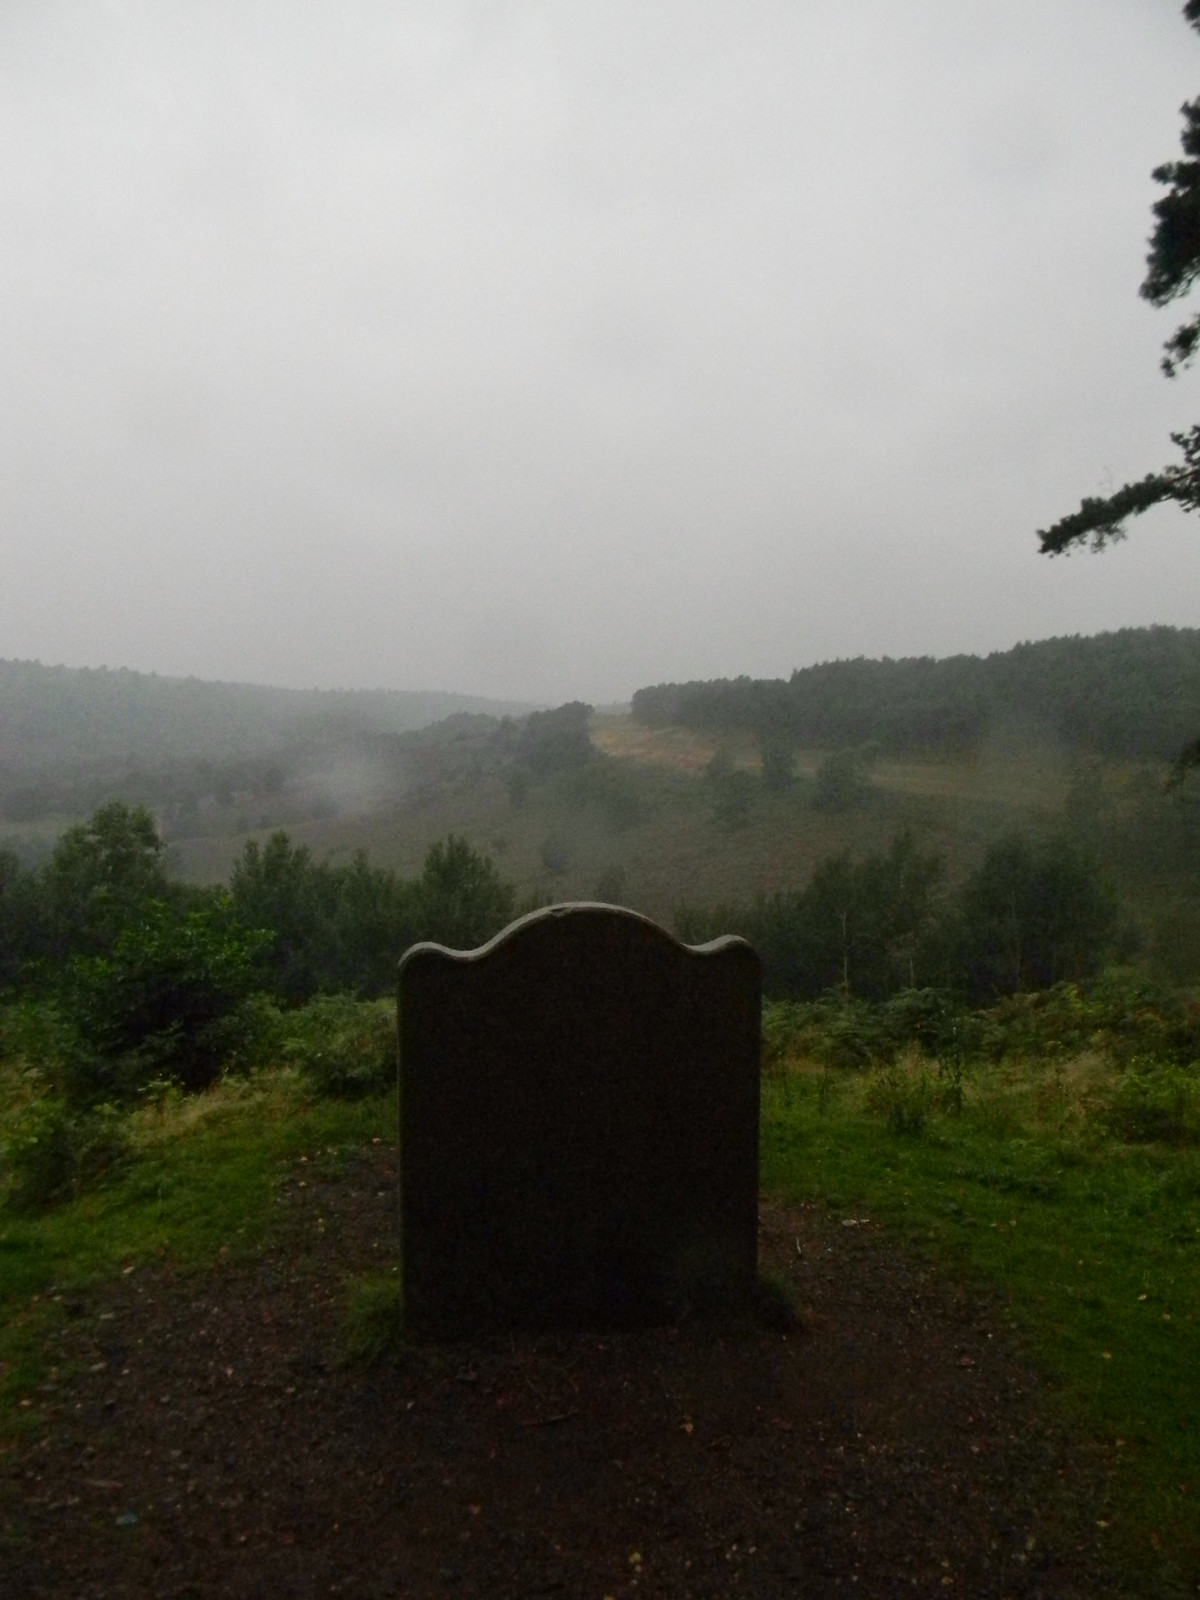 Sailors stone Marks the site of a murder. Devils Punchbowl, Milford to Haslemere